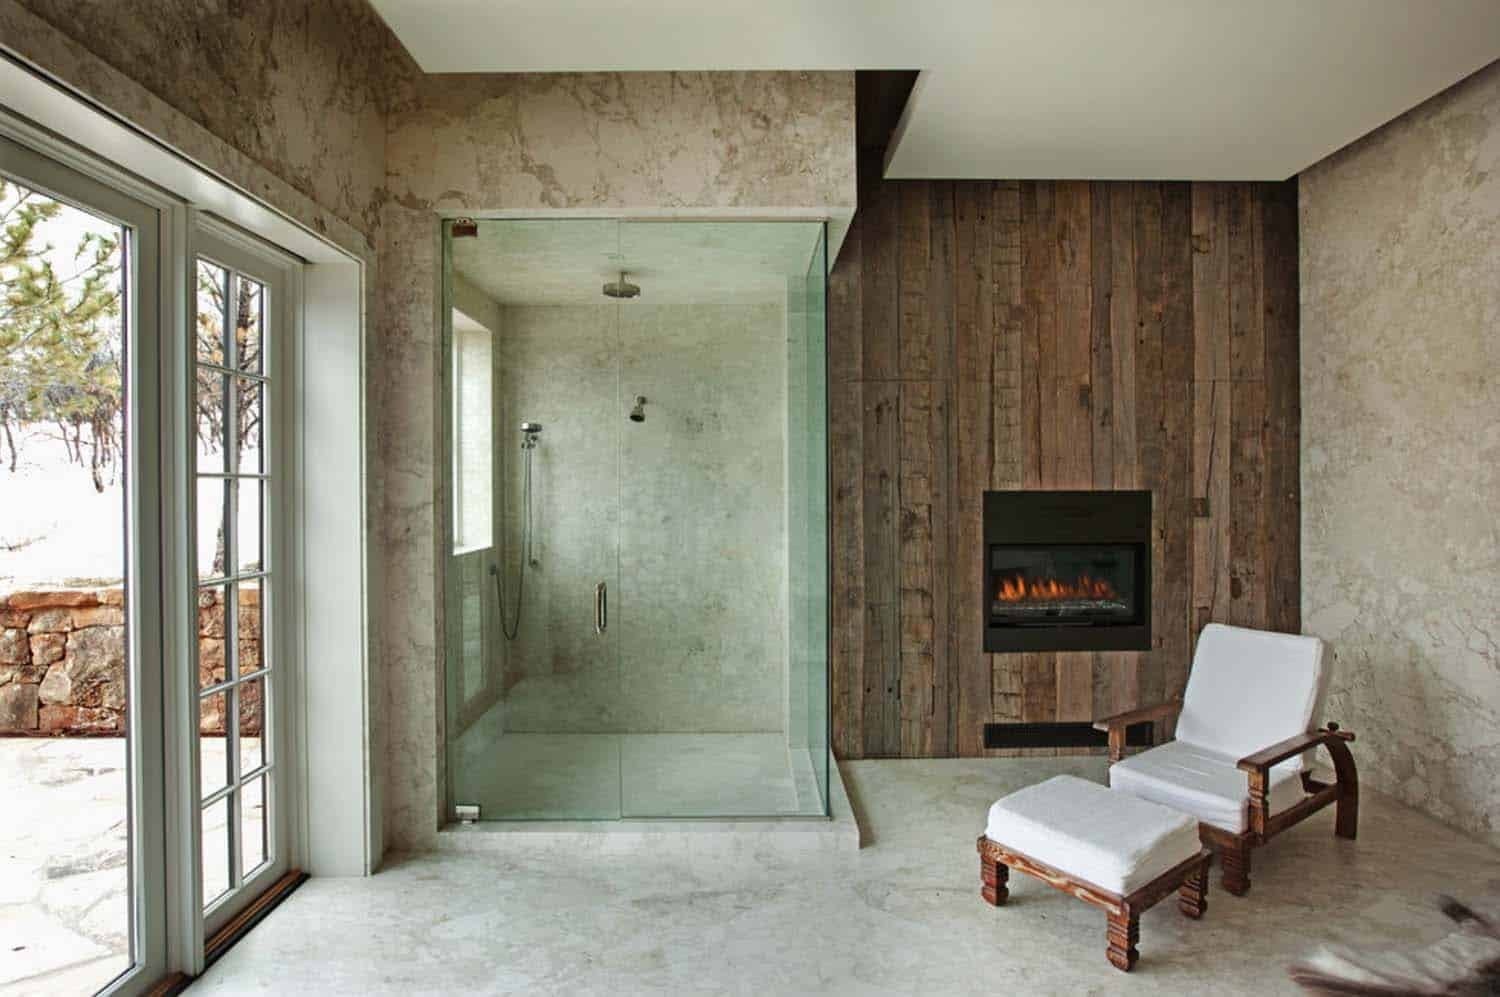 Modern Rustic Mountain Retreat-Frank de Biasi Interiors-17-1 Kindesign